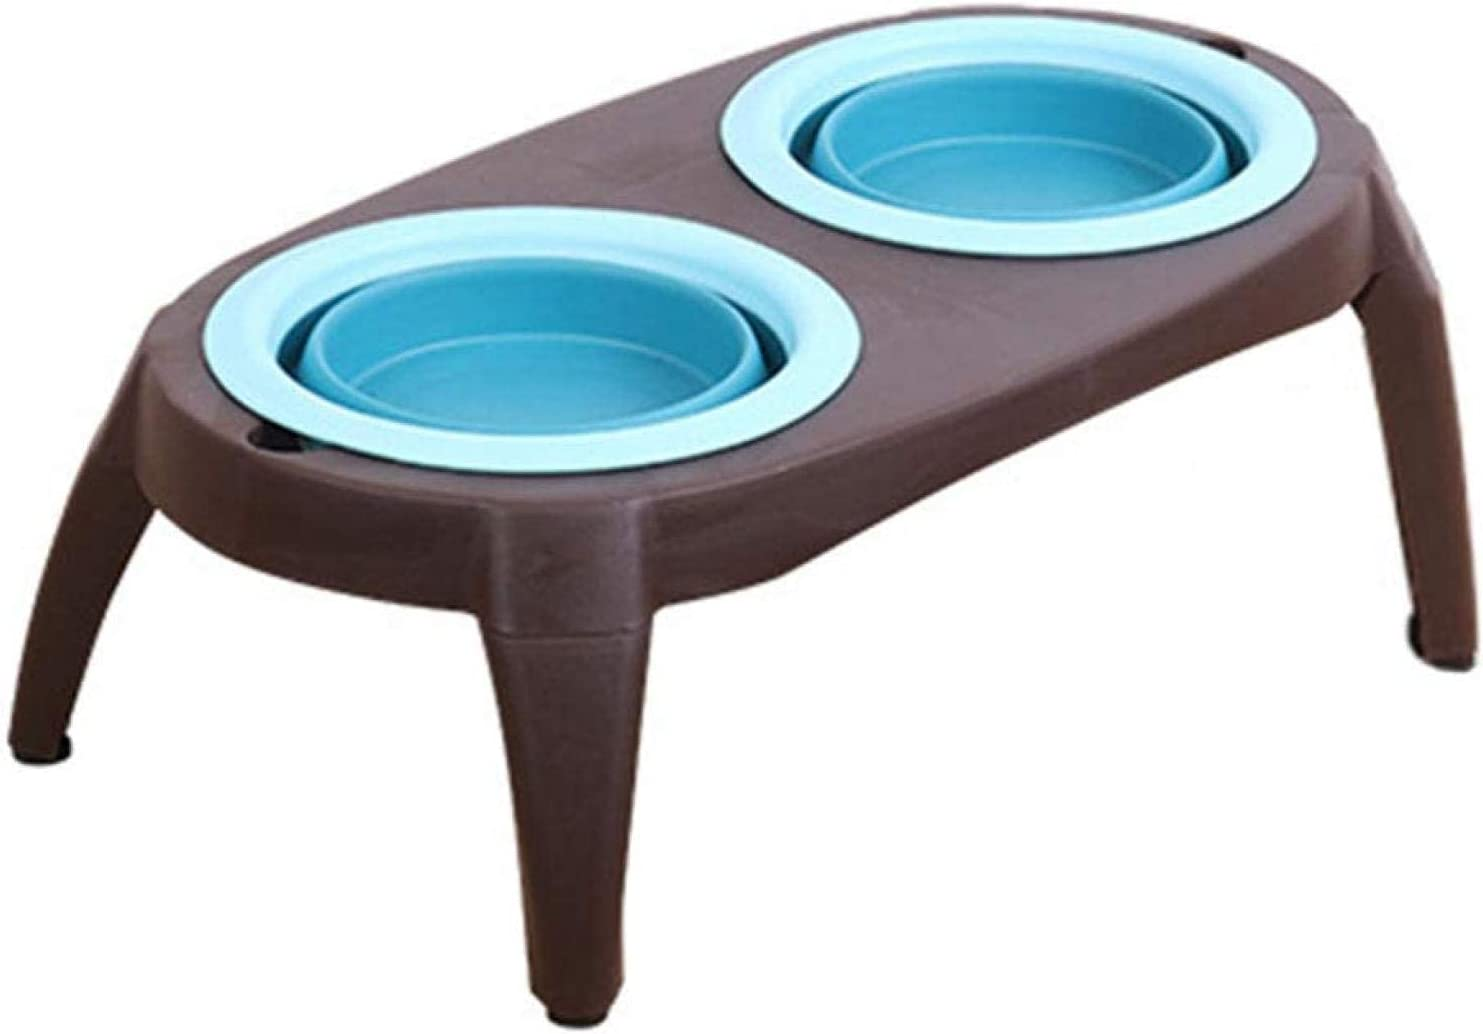 XHJTD Import Cheap mail order specialty store Elevated Dog Bowls Pet Collapsible Feeding Bowl